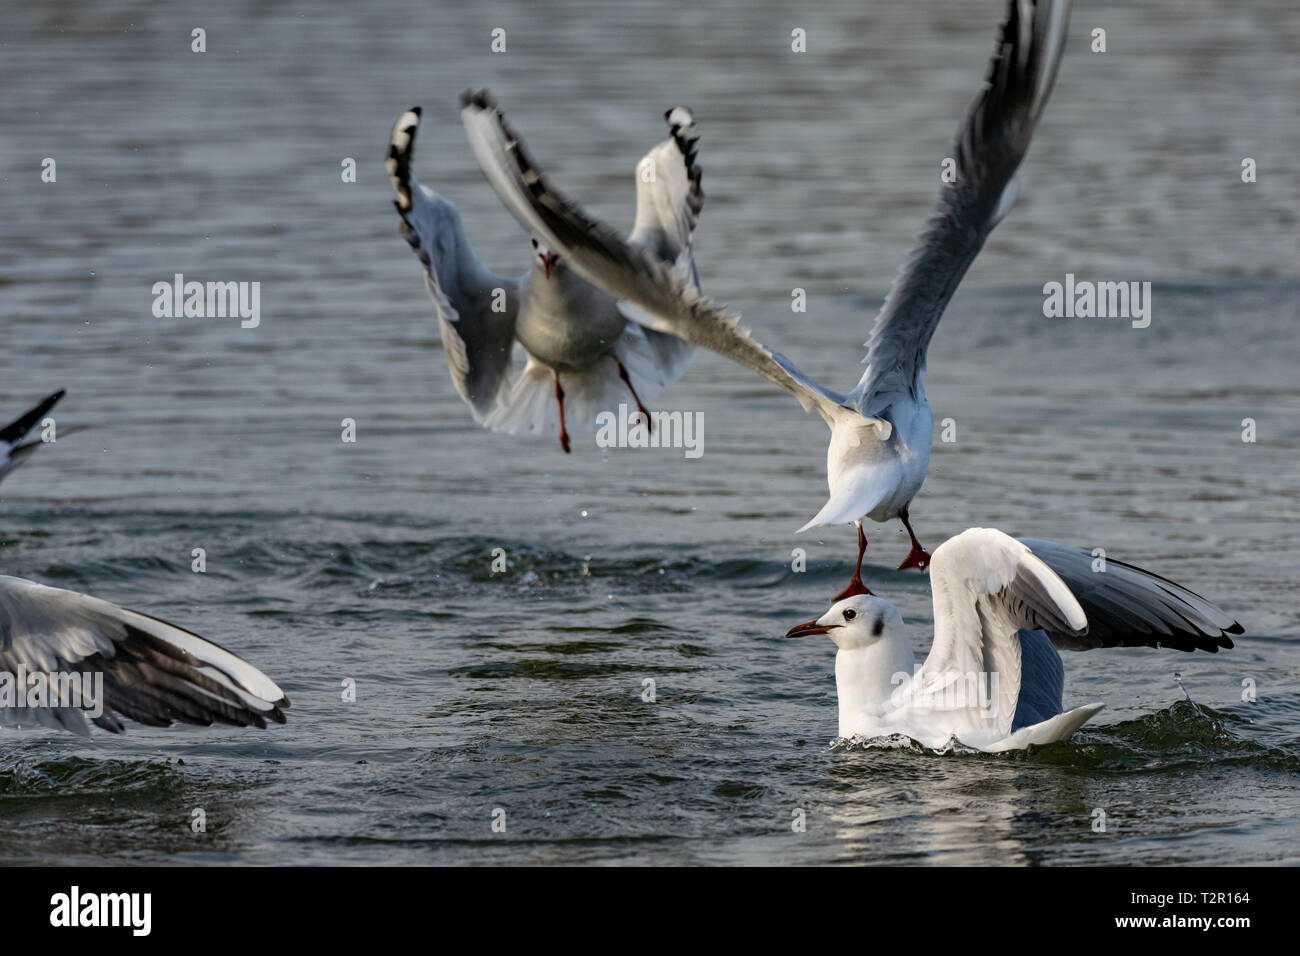 Black headed gulls (Chroicocephalus ridibundus) diving into water Stock Photo